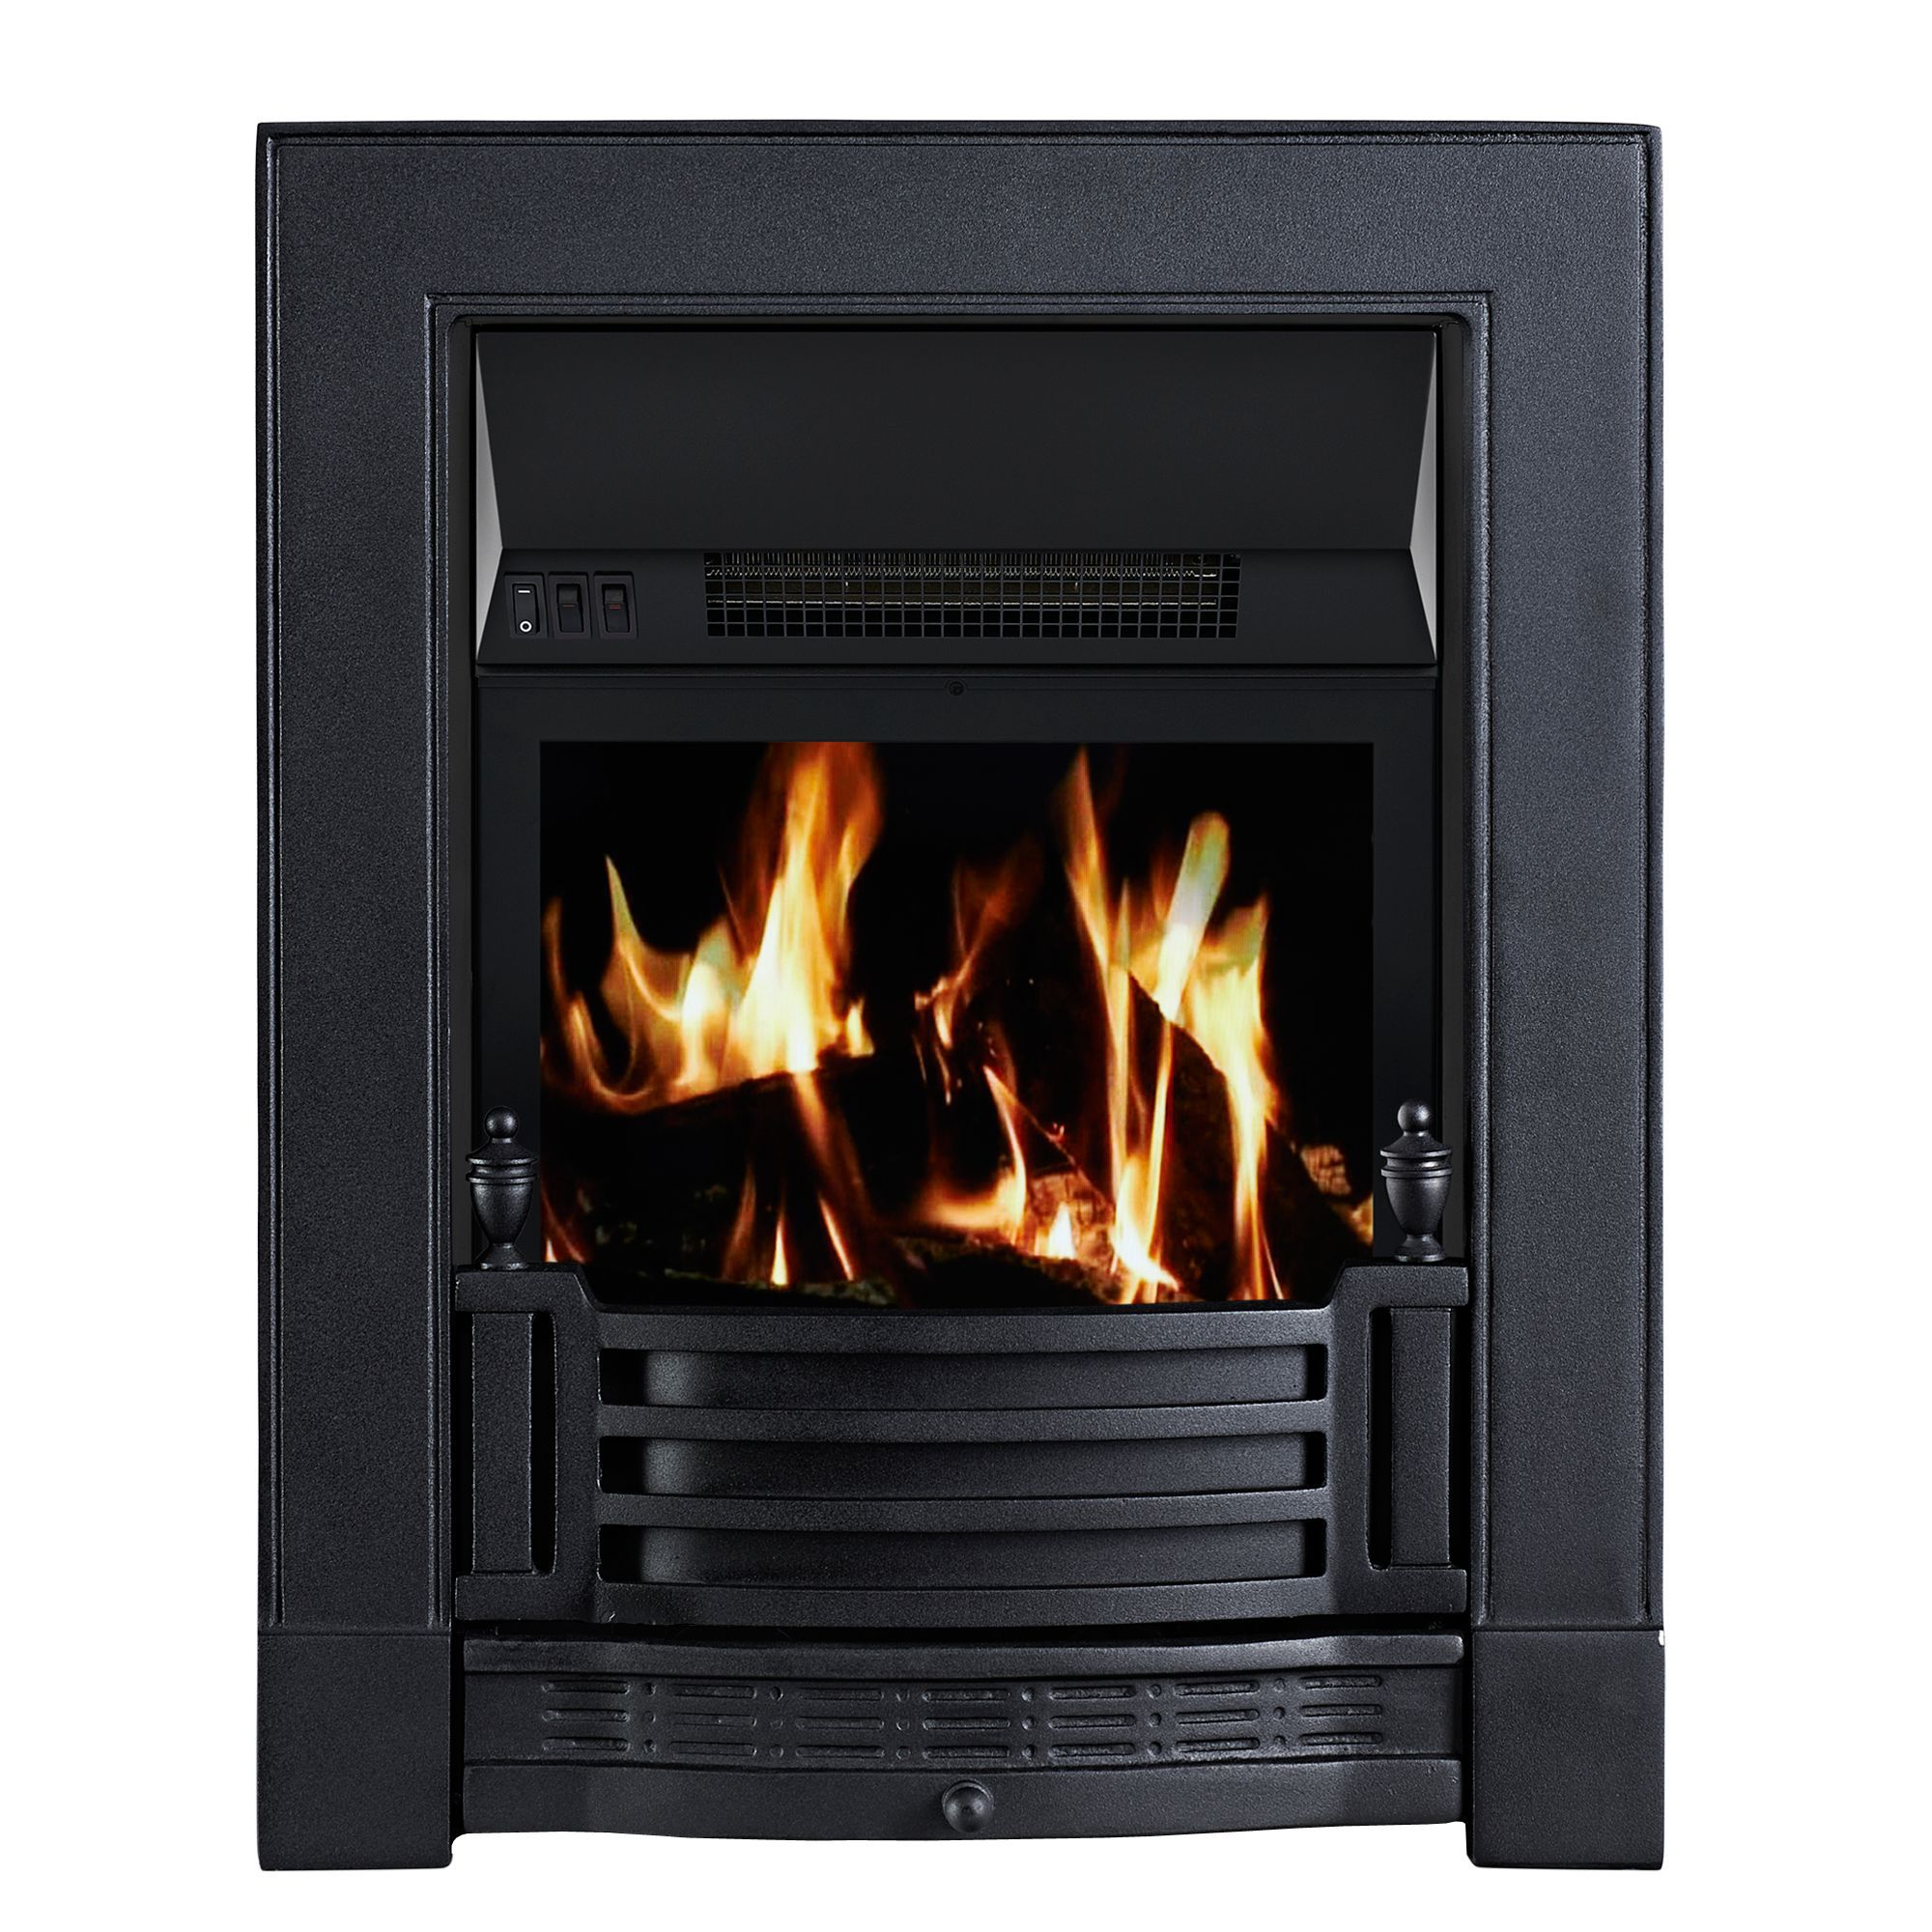 Focal Point Electric Fire: Focal Point Finsbury Black LCD Remote Control Inset